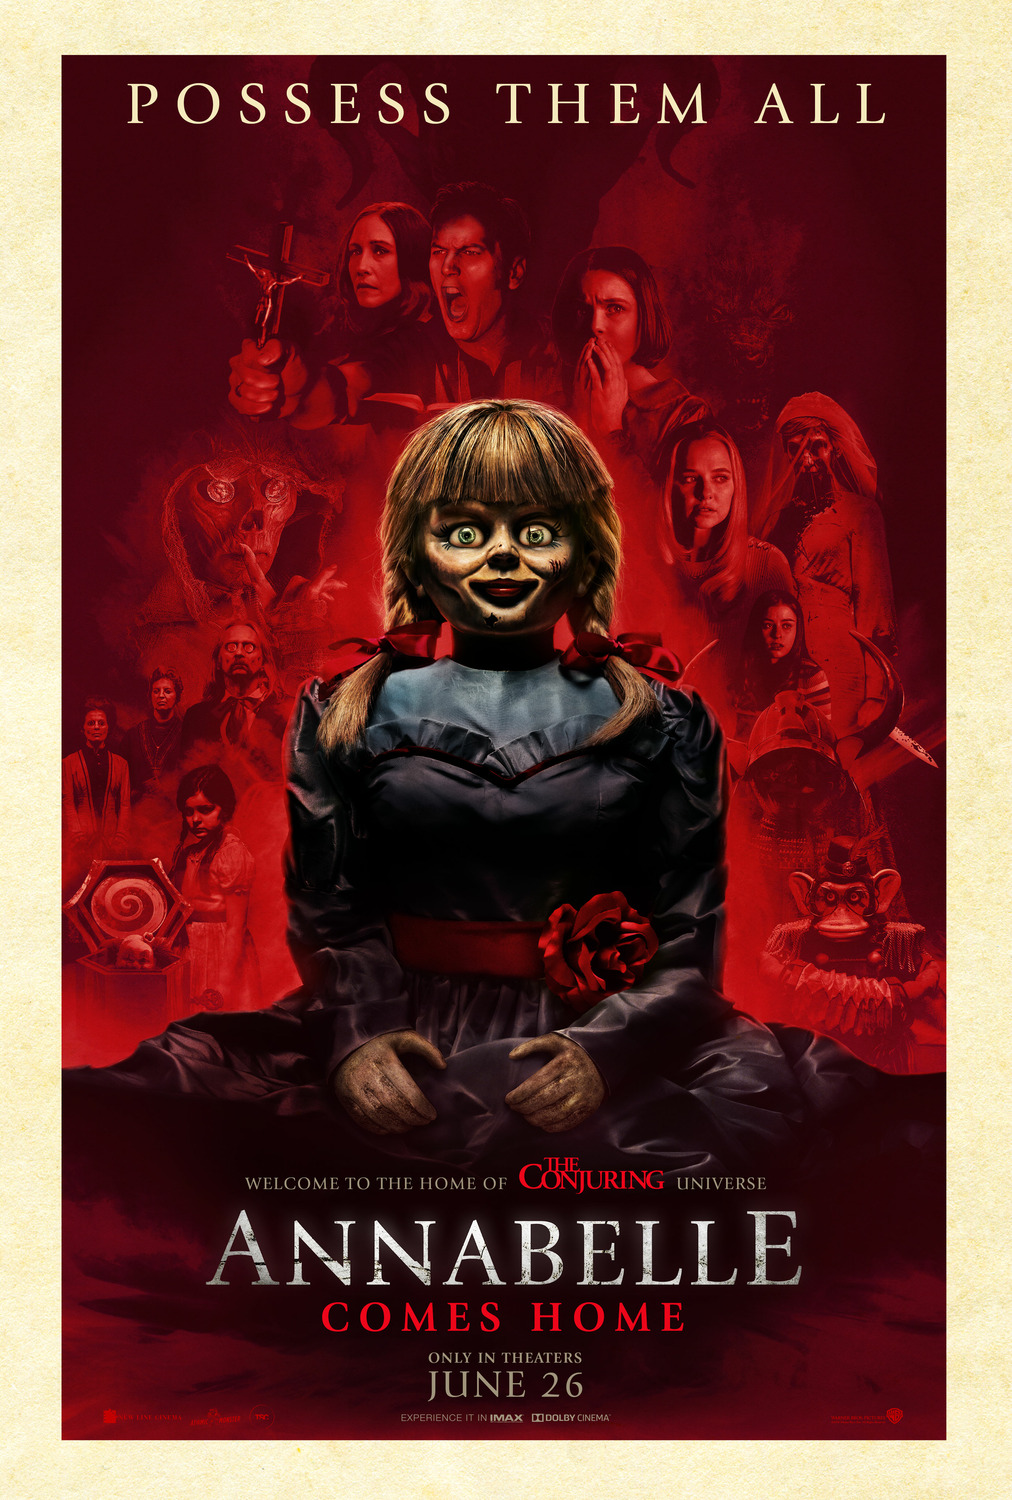 Annabelle Comes Home  movie promo poster